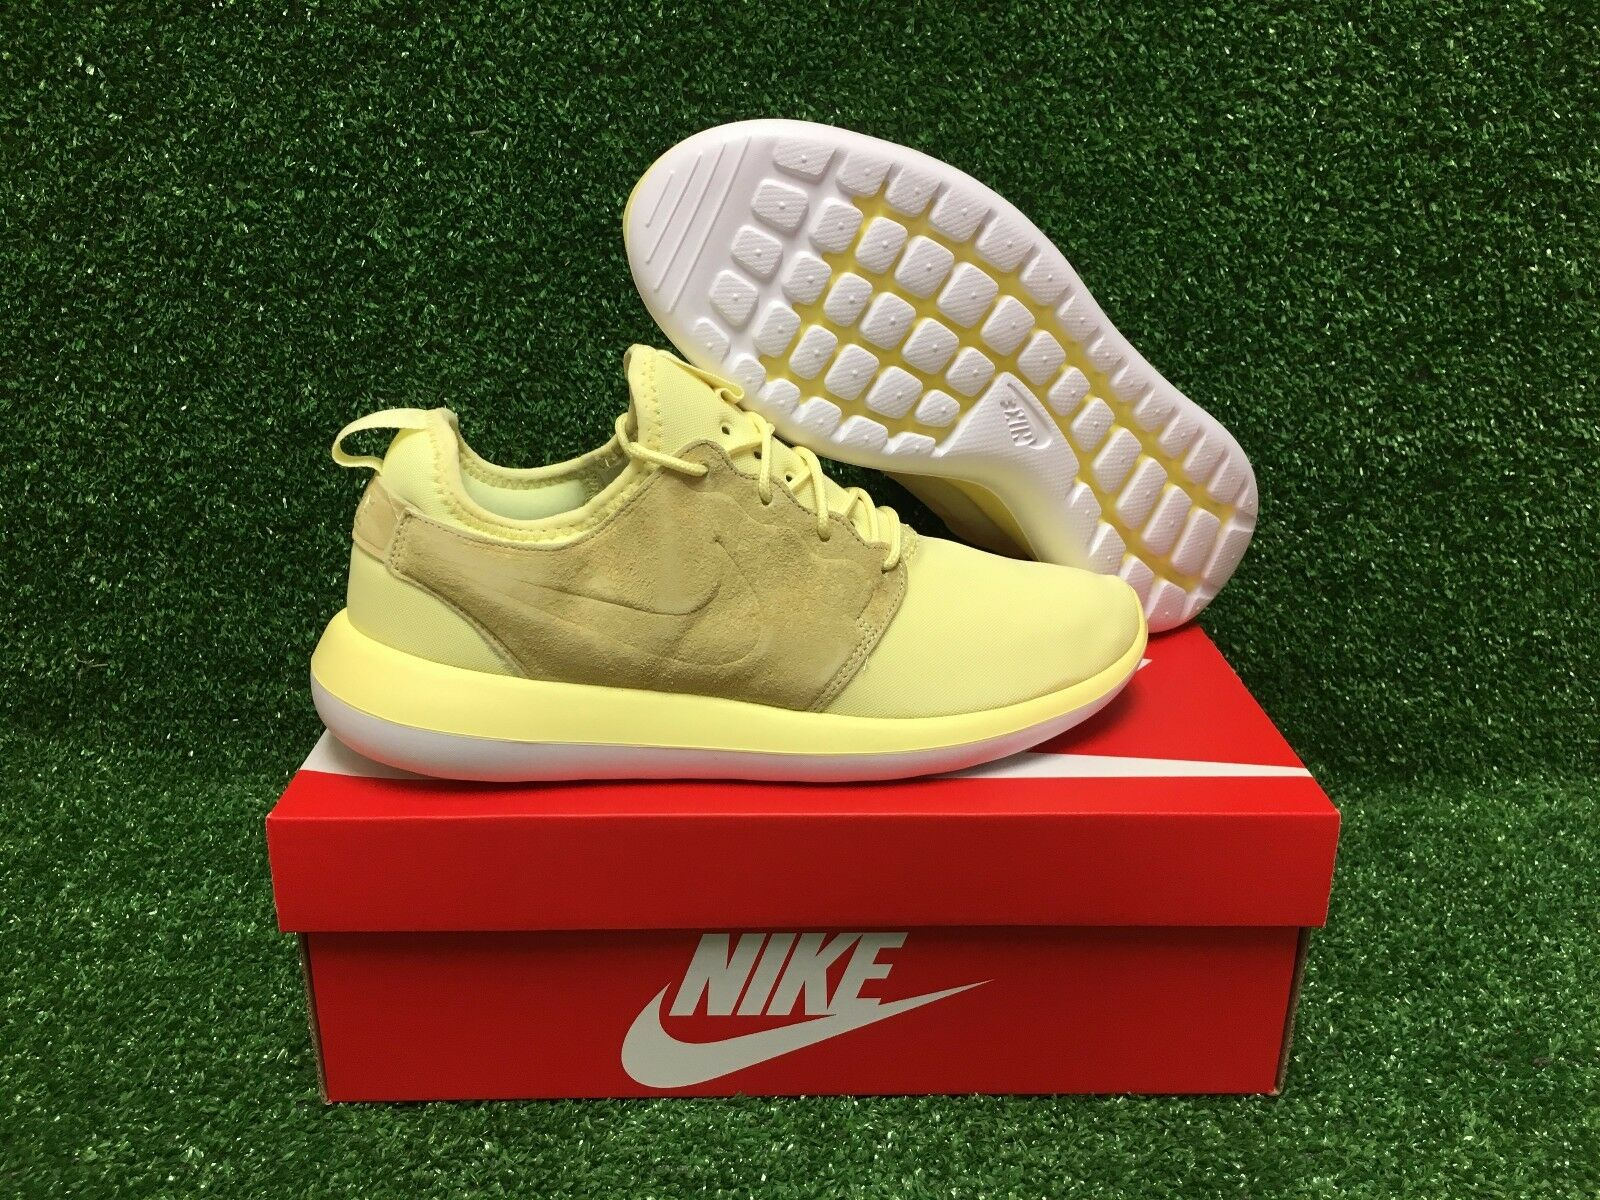 NEW NIKE ROSHE TWO BR MEN'S SHOES LEMON CHIFFON WHITE 898037-700